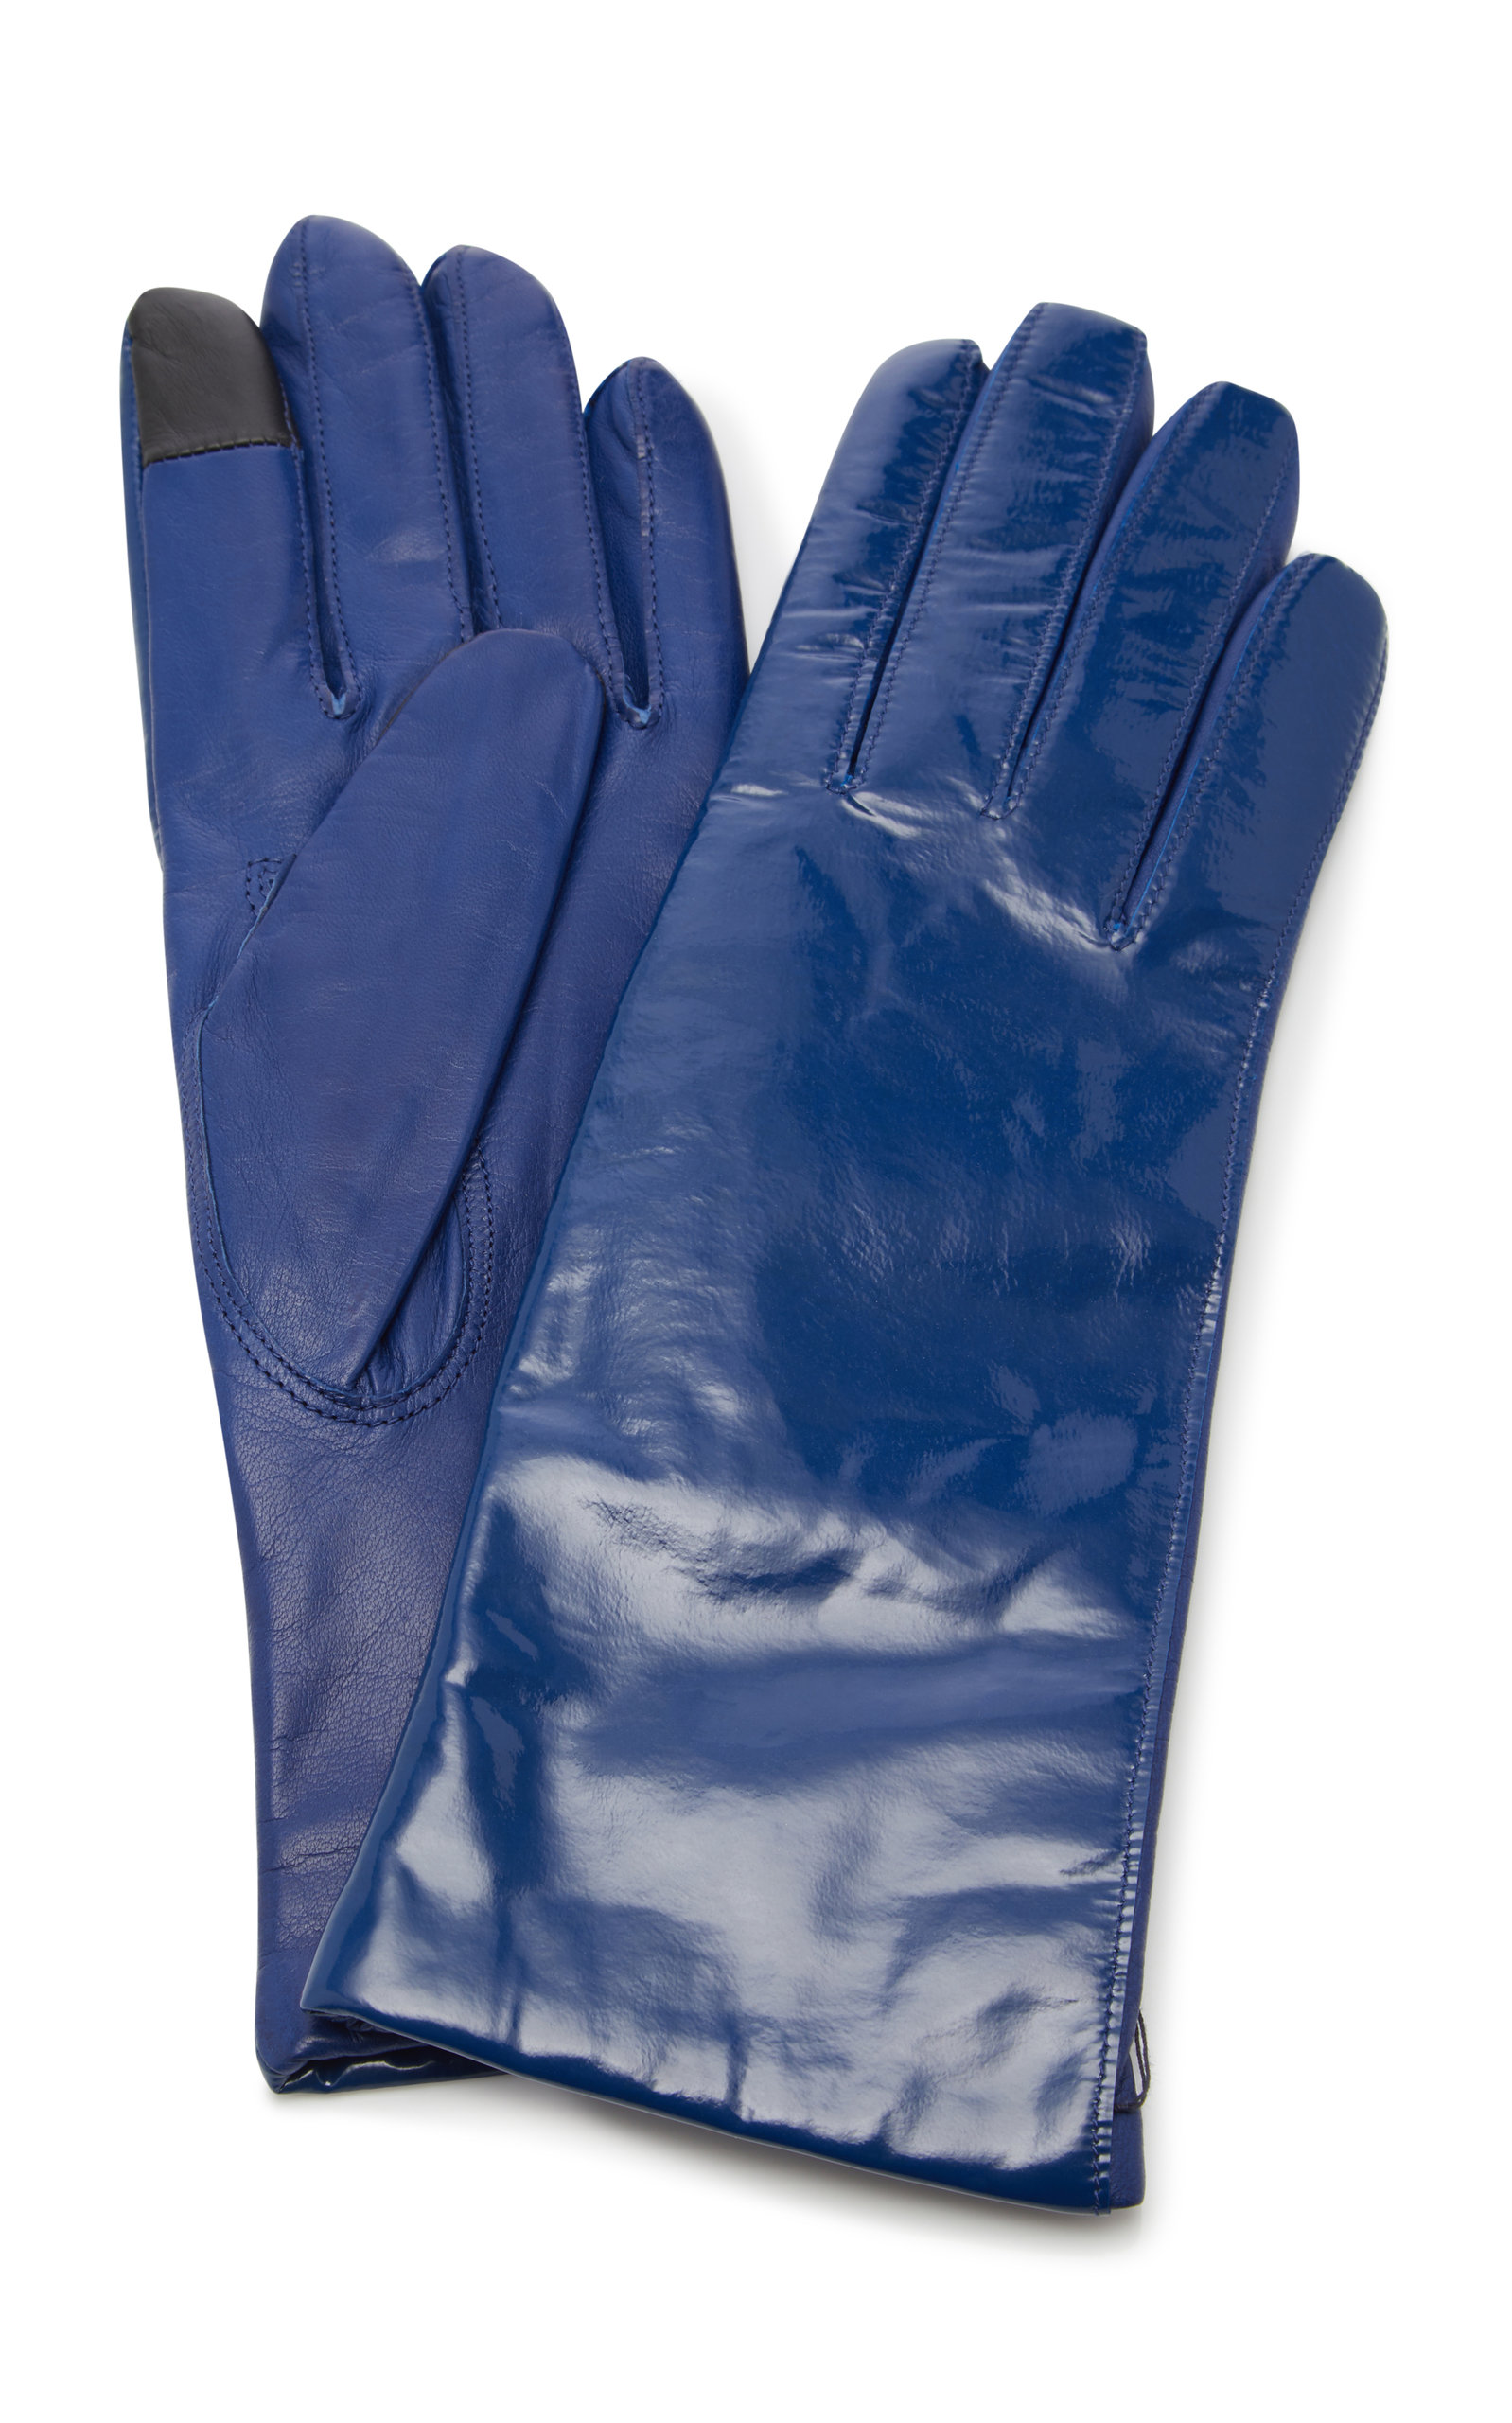 MAISON FABRE Vinyl And Leather Gloves in Blue